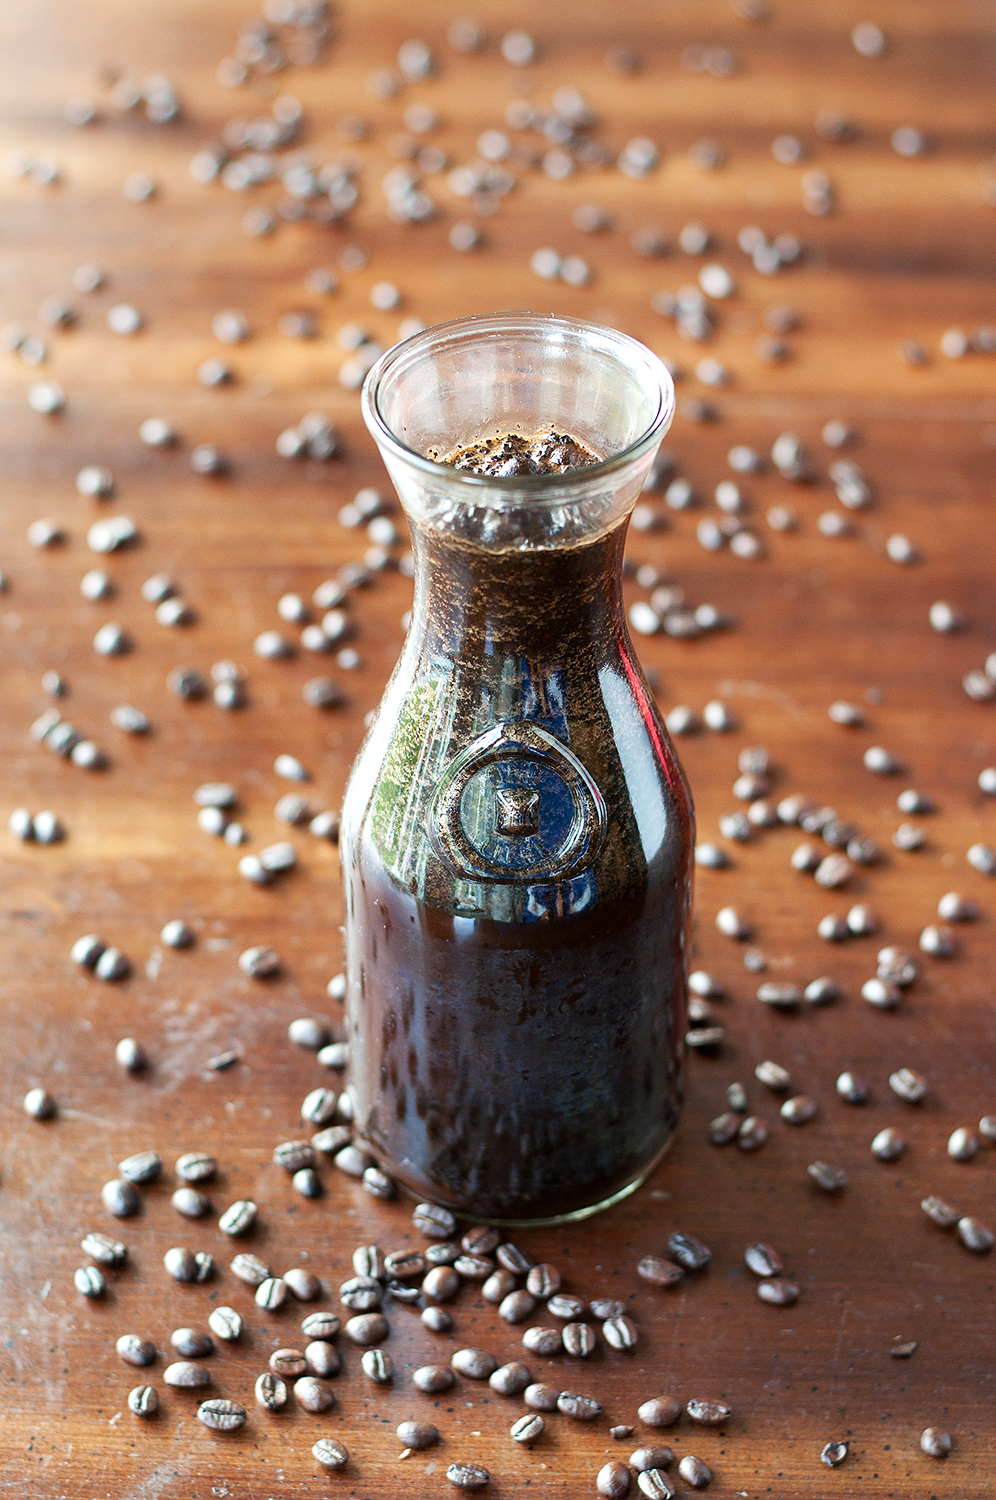 Cold Brewed Coffee Concentrate | BSintheKitchen.com #coffee